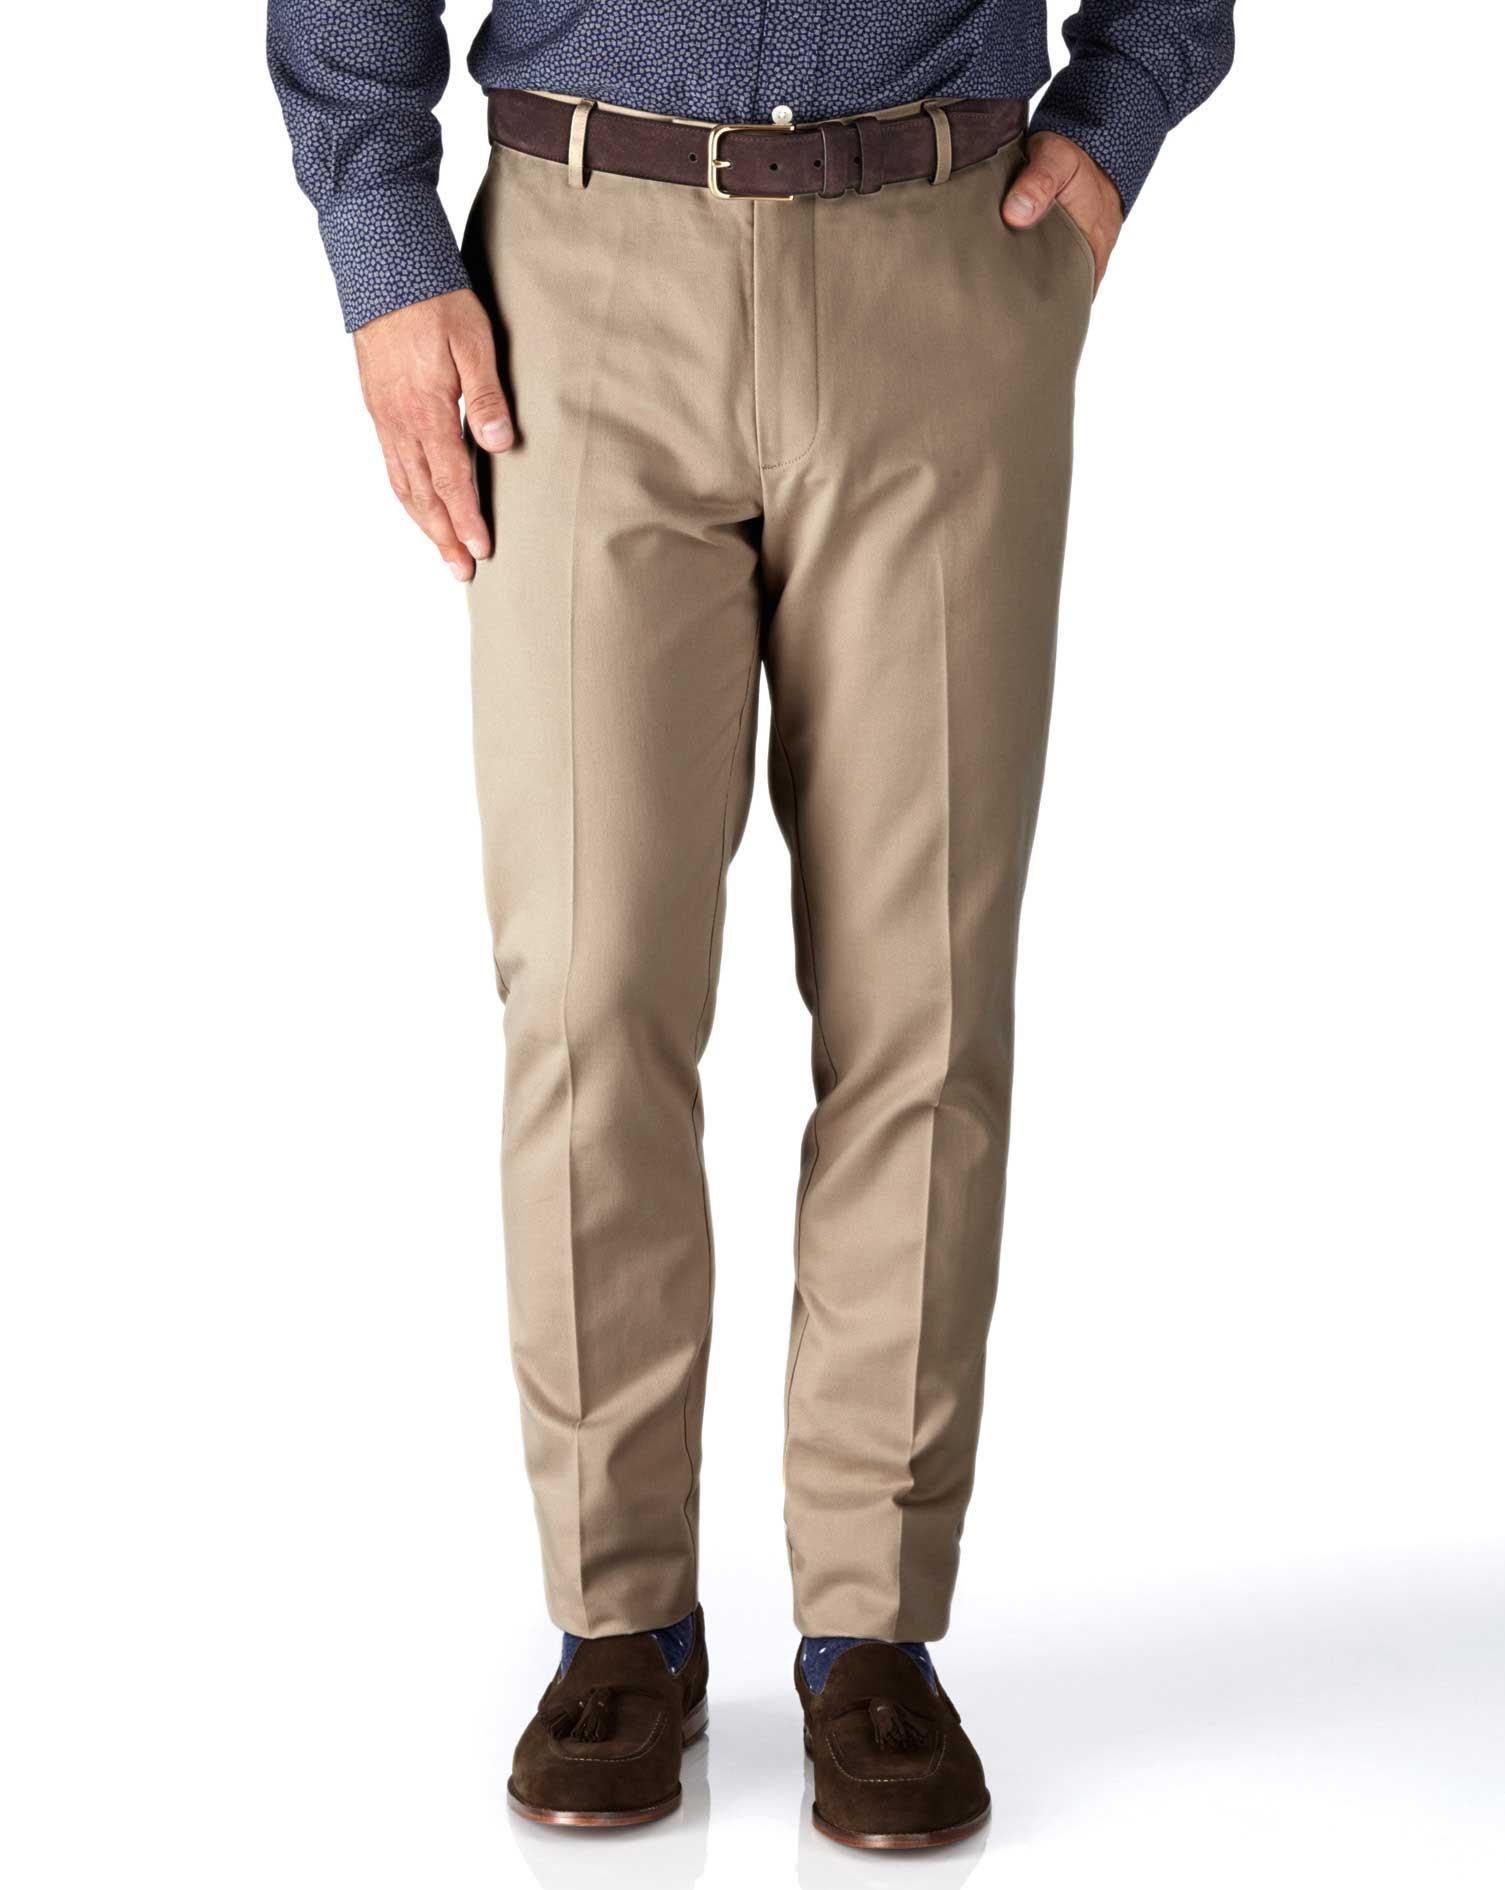 Stone Slim Fit Flat Front Non-Iron Cotton Chino Trousers Size W38 L34 by Charles Tyrwhitt